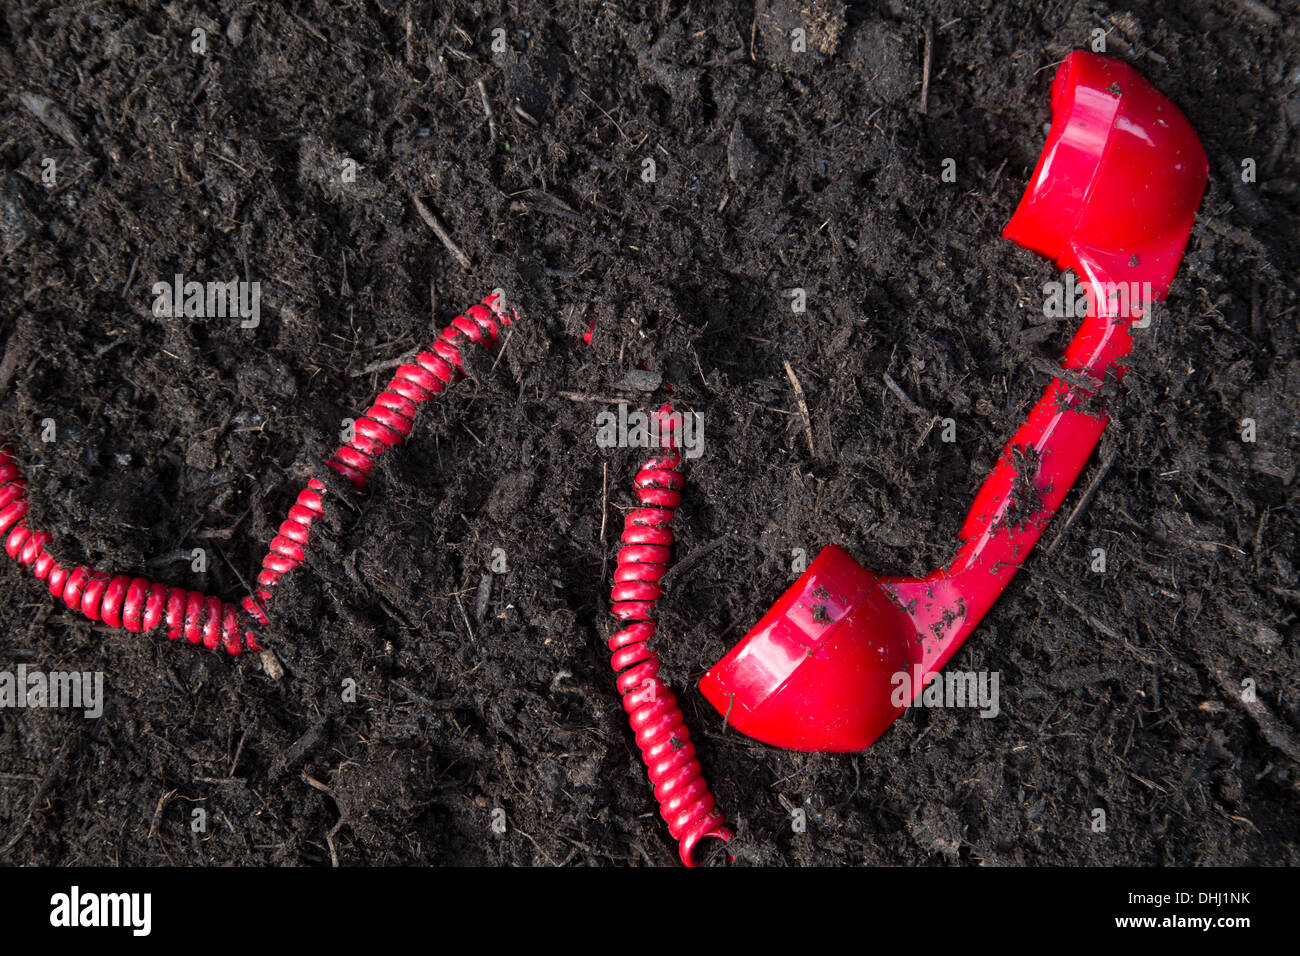 Red retro telephone handset buried in soil - Stock Image